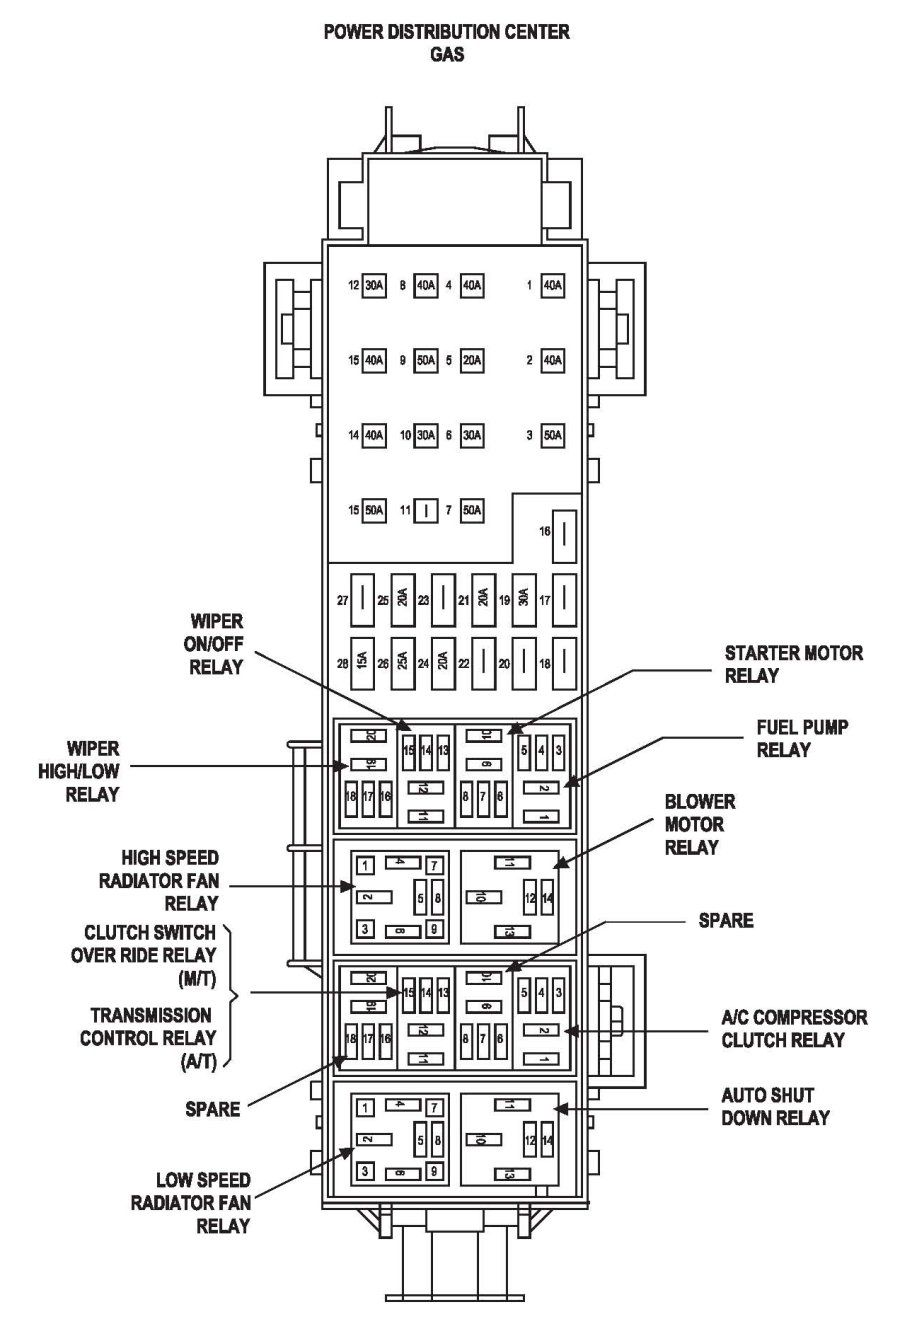 b3536c3739783eb19f827744cc42c3c4 jeep liberty fuse box diagram image details jeep liberty 2006 jeep liberty fuse box at sewacar.co